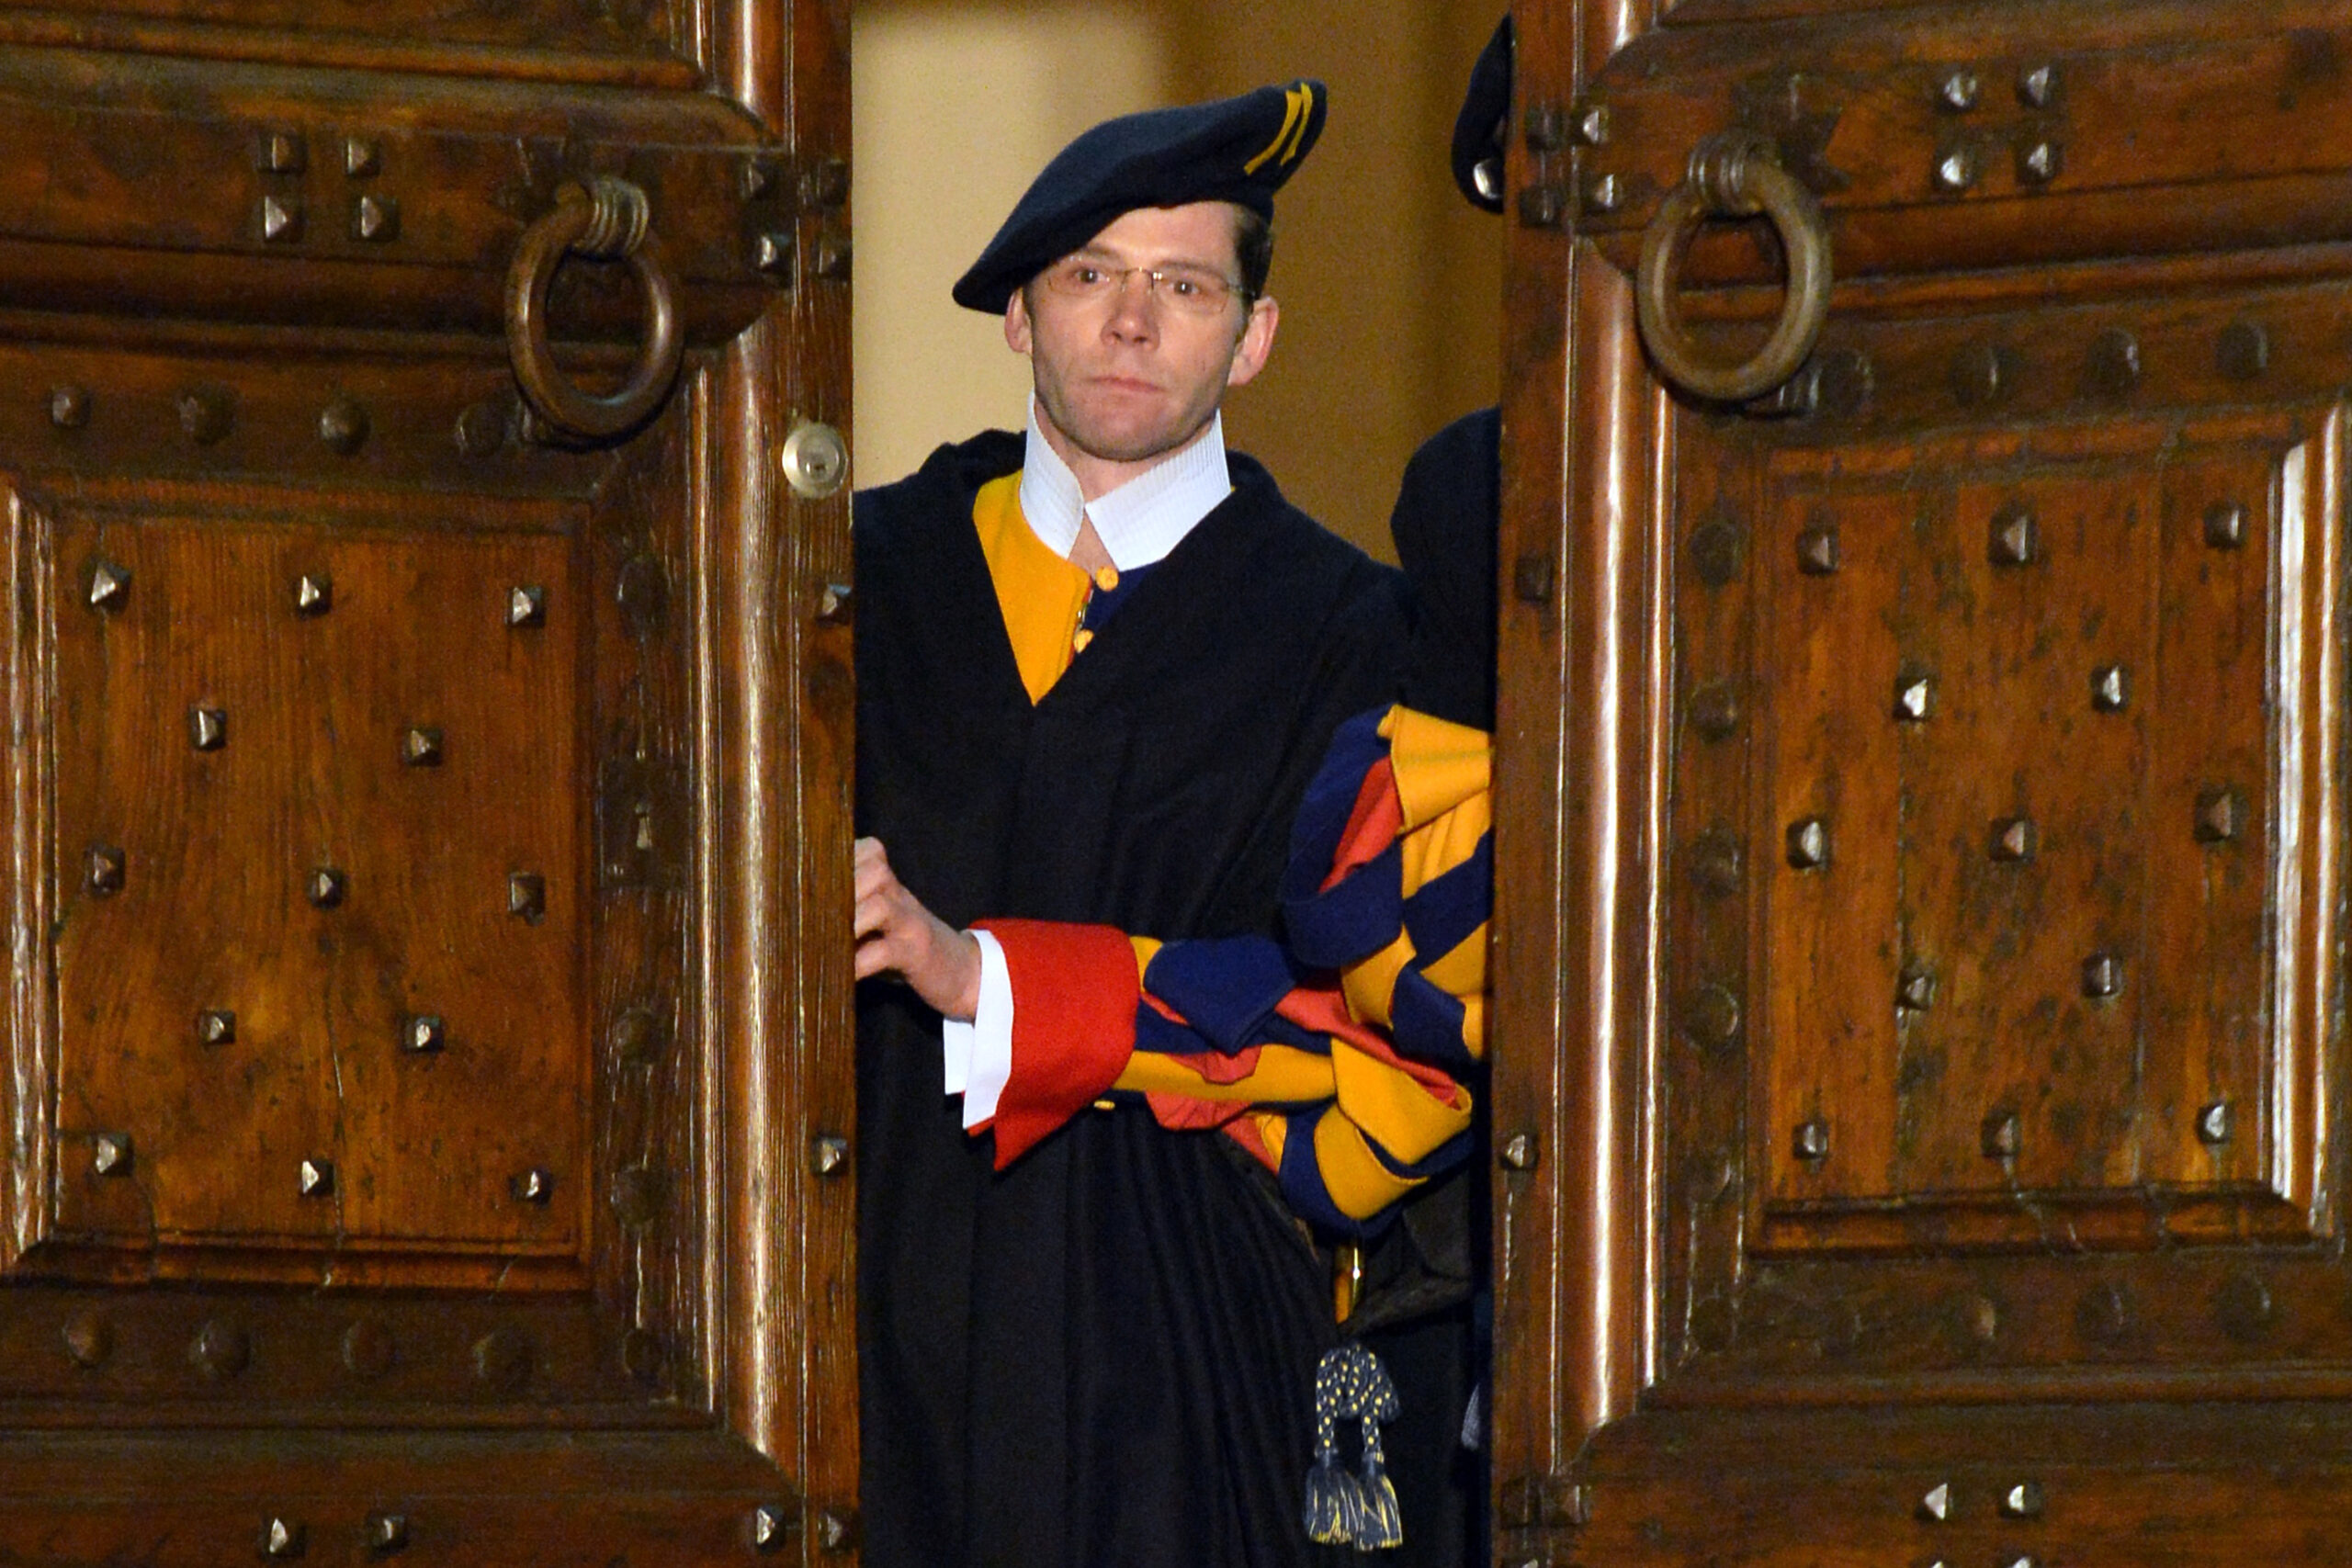 ITALY-VATICAN-POPE-CASTELGANDOLFO-SWISS GUARDS-RESIGN